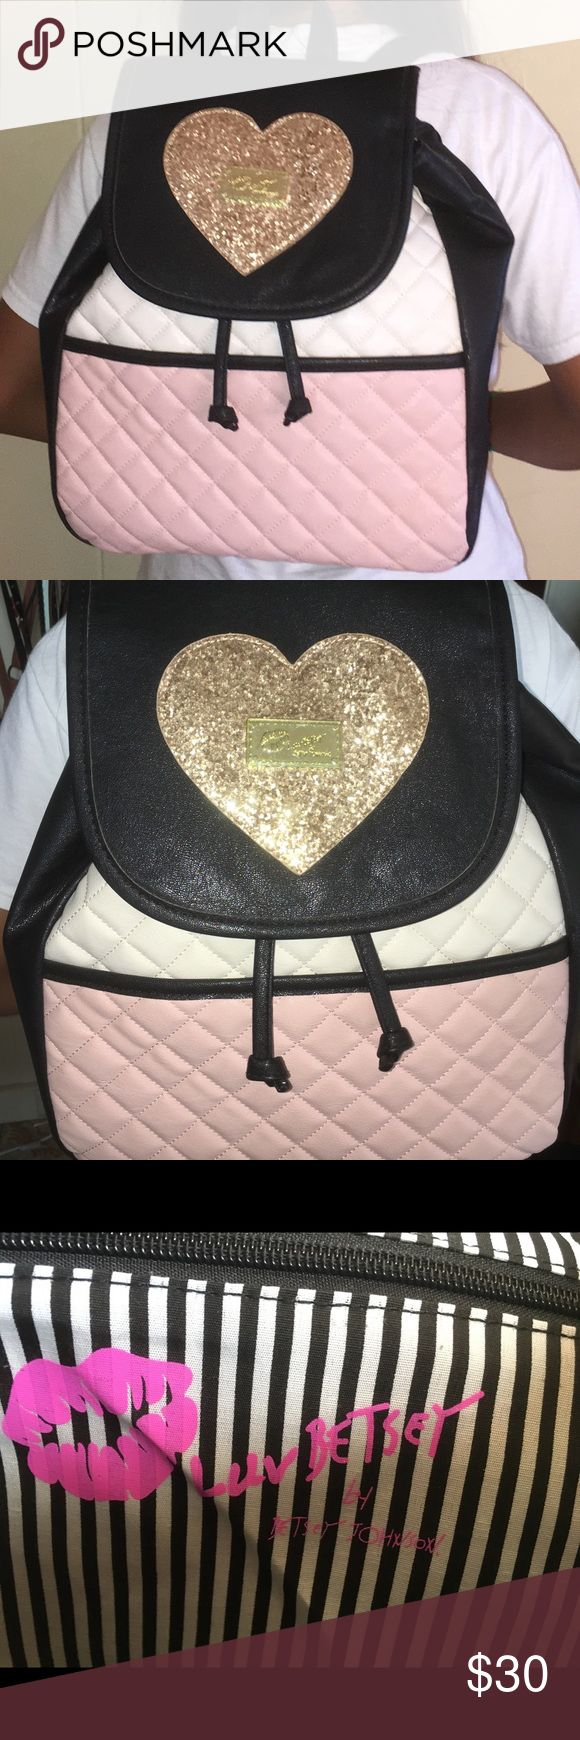 CUTE Betsy Johnson Fashion BackPack New w/ Tag. Great condition. Small but looks big on the picture since my 12yo sister is wearing it. Fashionably good adventure bag. Offers are welcome. Betsey Johnson Bags Backpacks